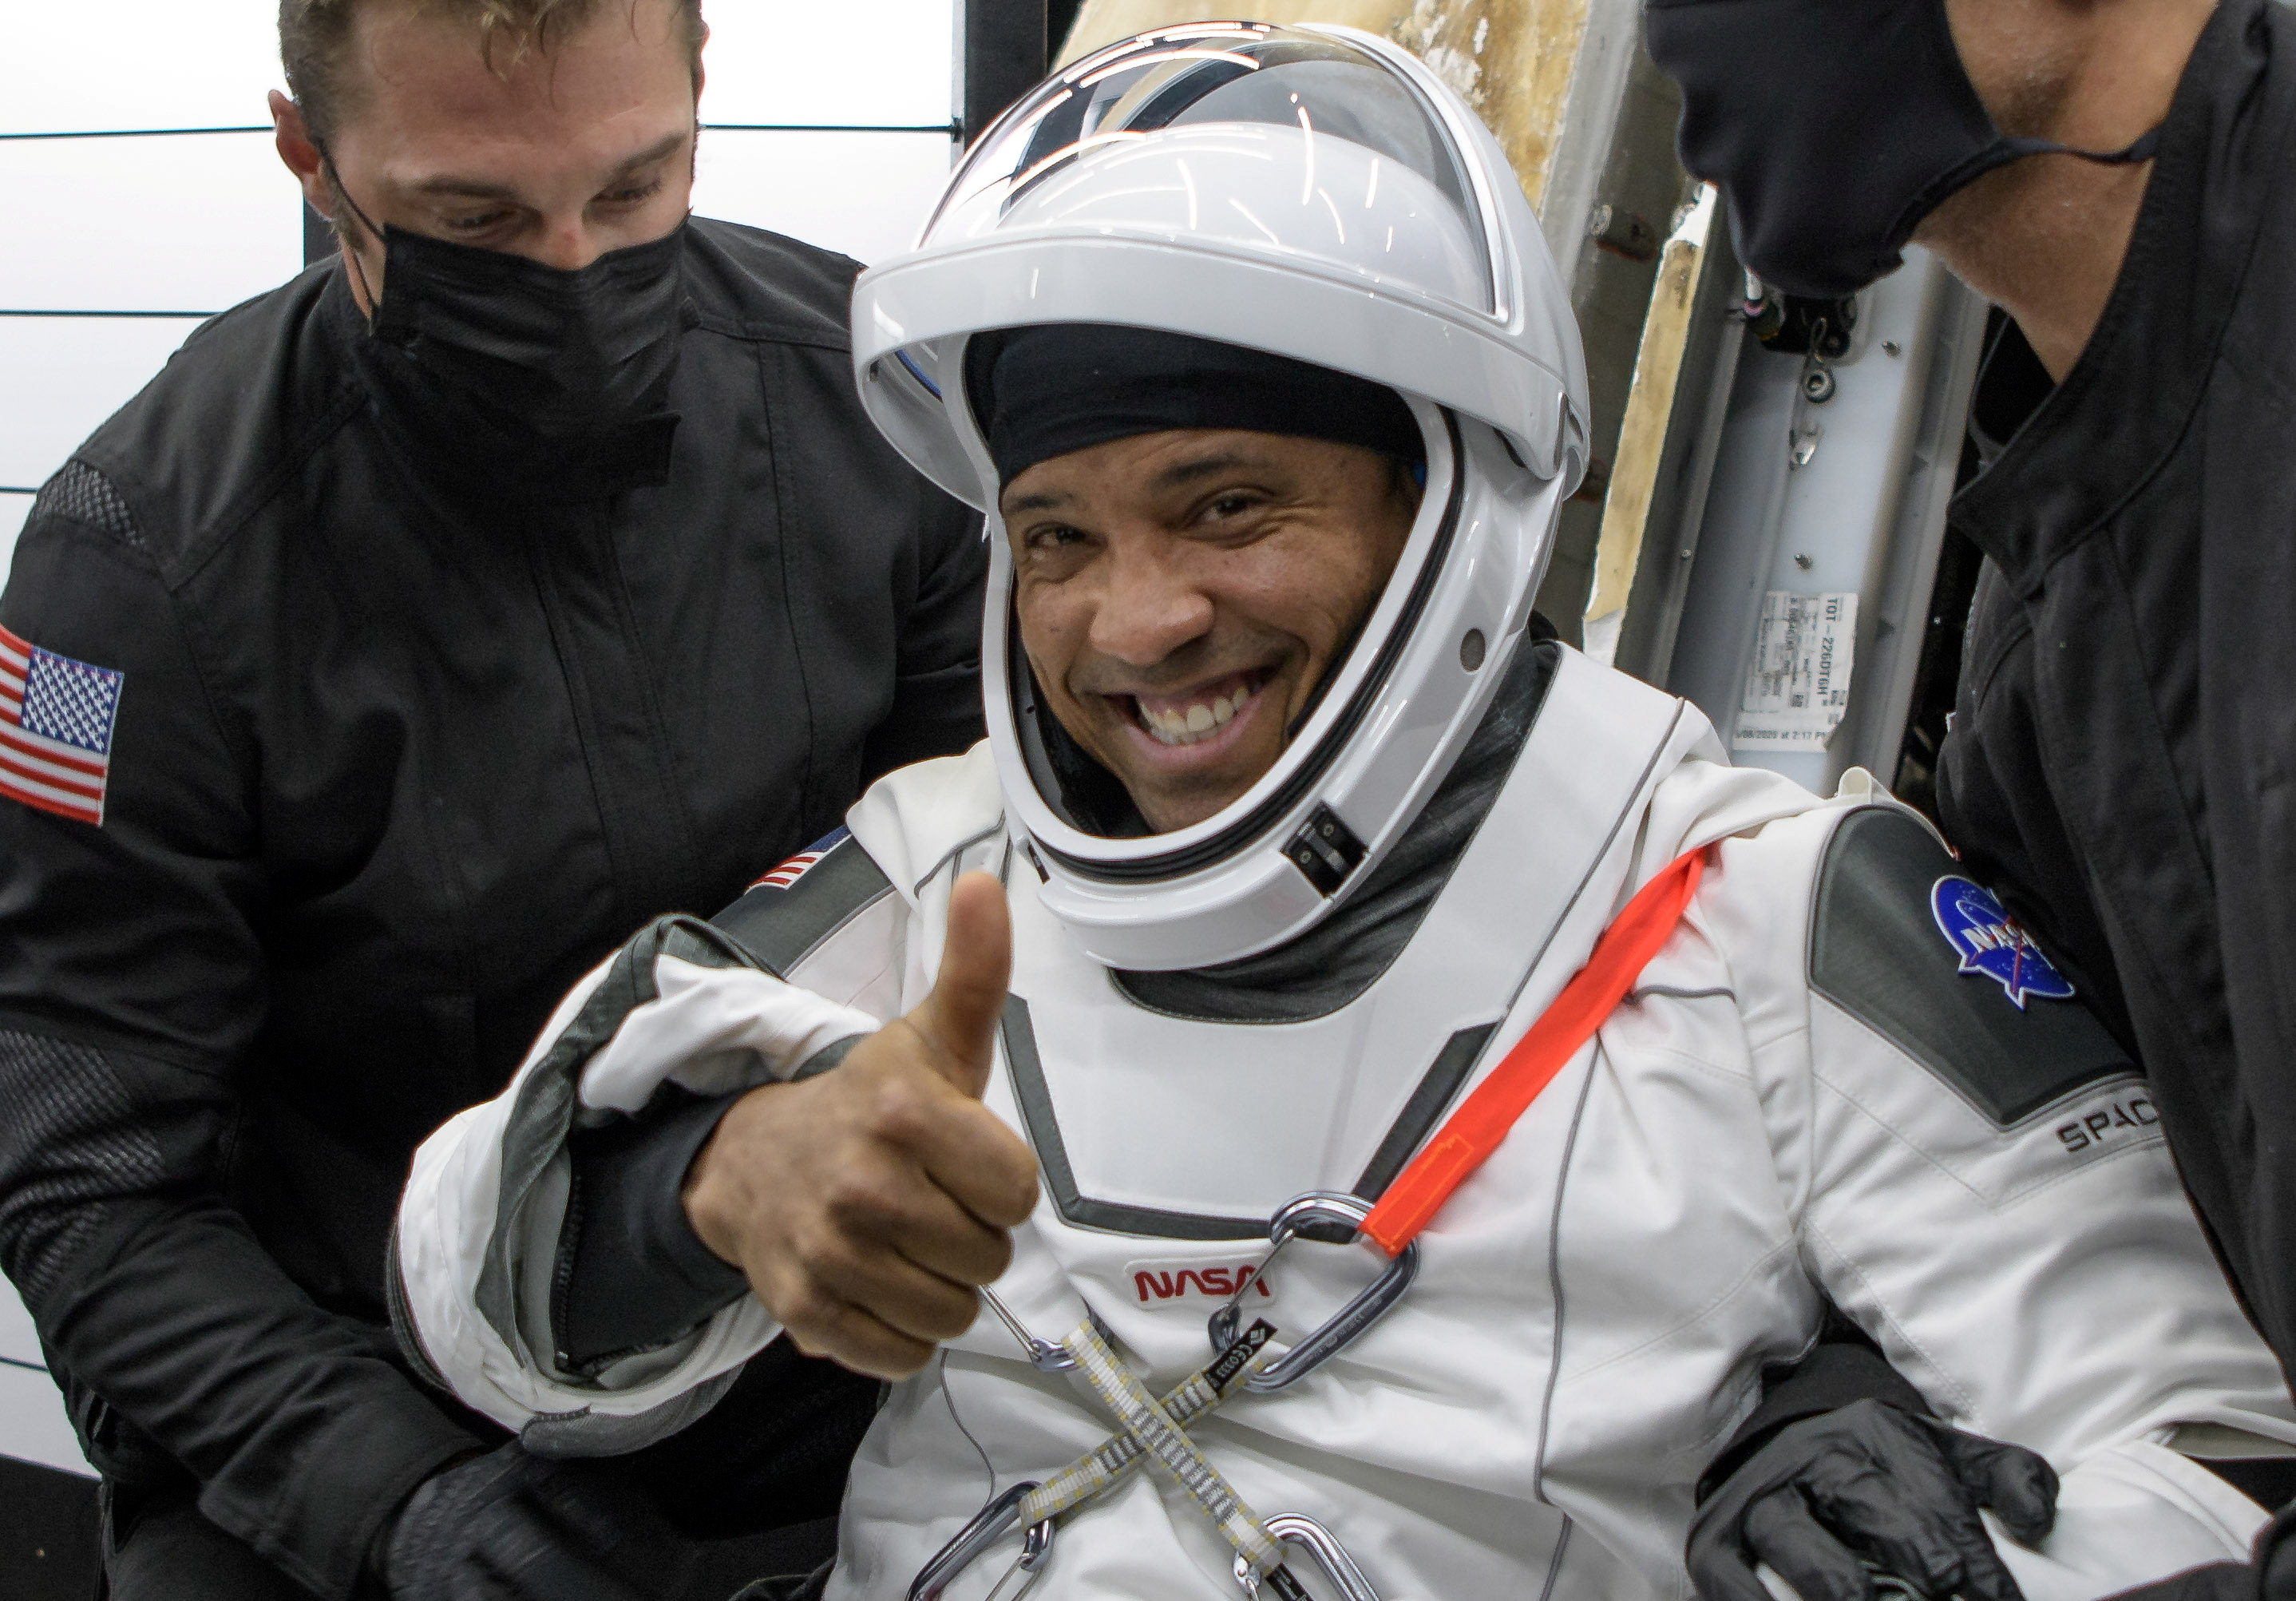 NASA astronaut Victor Glover is helped out of the SpaceX Crew Dragon Resilience spacecraft onboard the SpaceX GO Navigator recovery ship after he, NASA astronauts Mike Hopkins, Shannon Walker, and Japan Aerospace Exploration Agency (JAXA) astronaut Soichi Noguchi, landed in the Gulf of Mexico off the coast of Panama City, Florida, U.S. May 2, 2021. NASA/Bill Ingalls/Handout via REUTERS